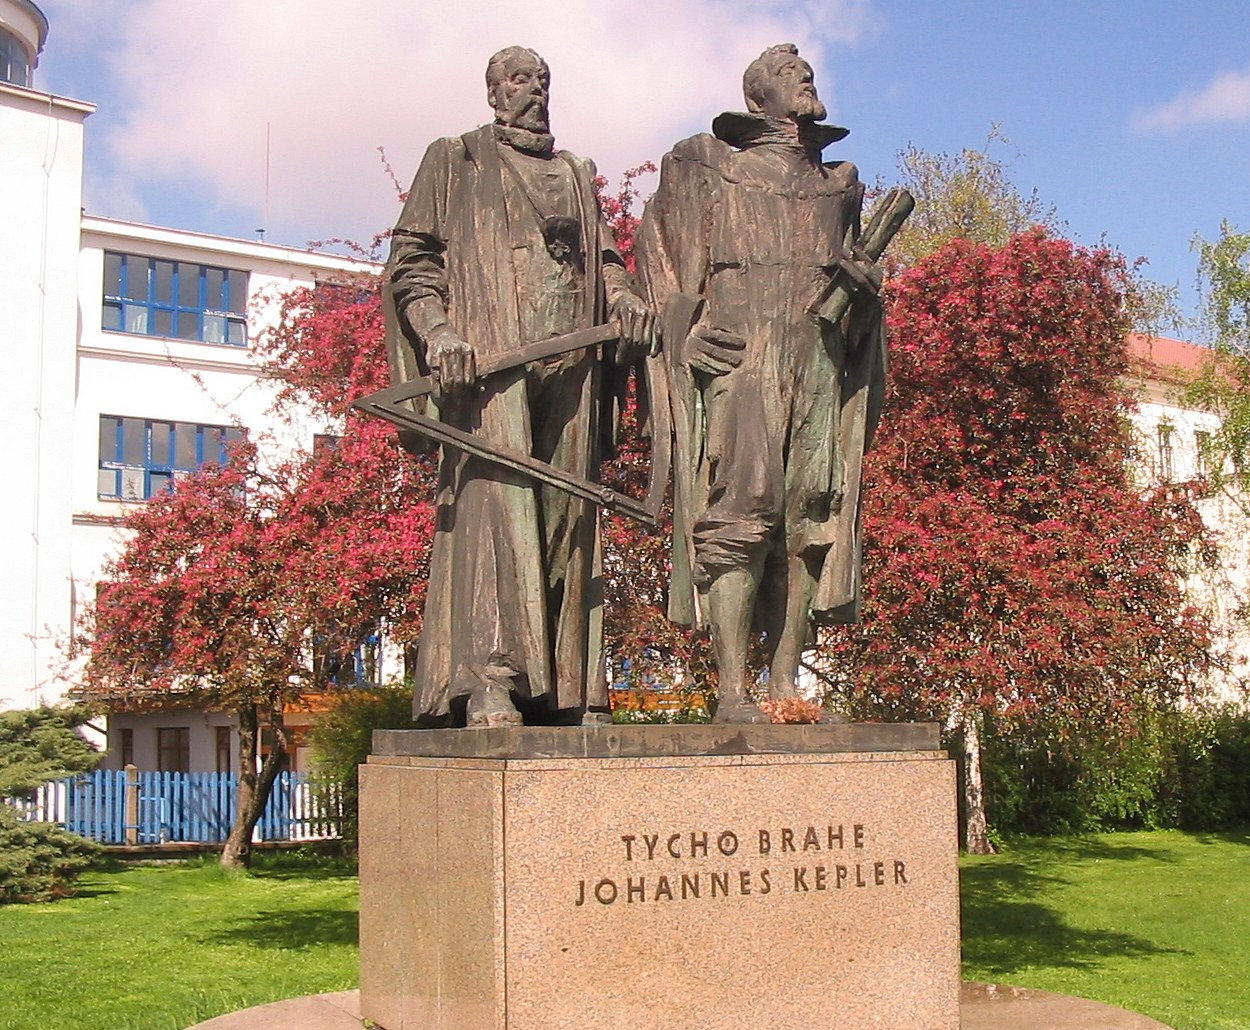 Monument to Tycho Brahe and Johannes Kepler in Prague, Czech Republic. Photo taken on April 30, 2006.